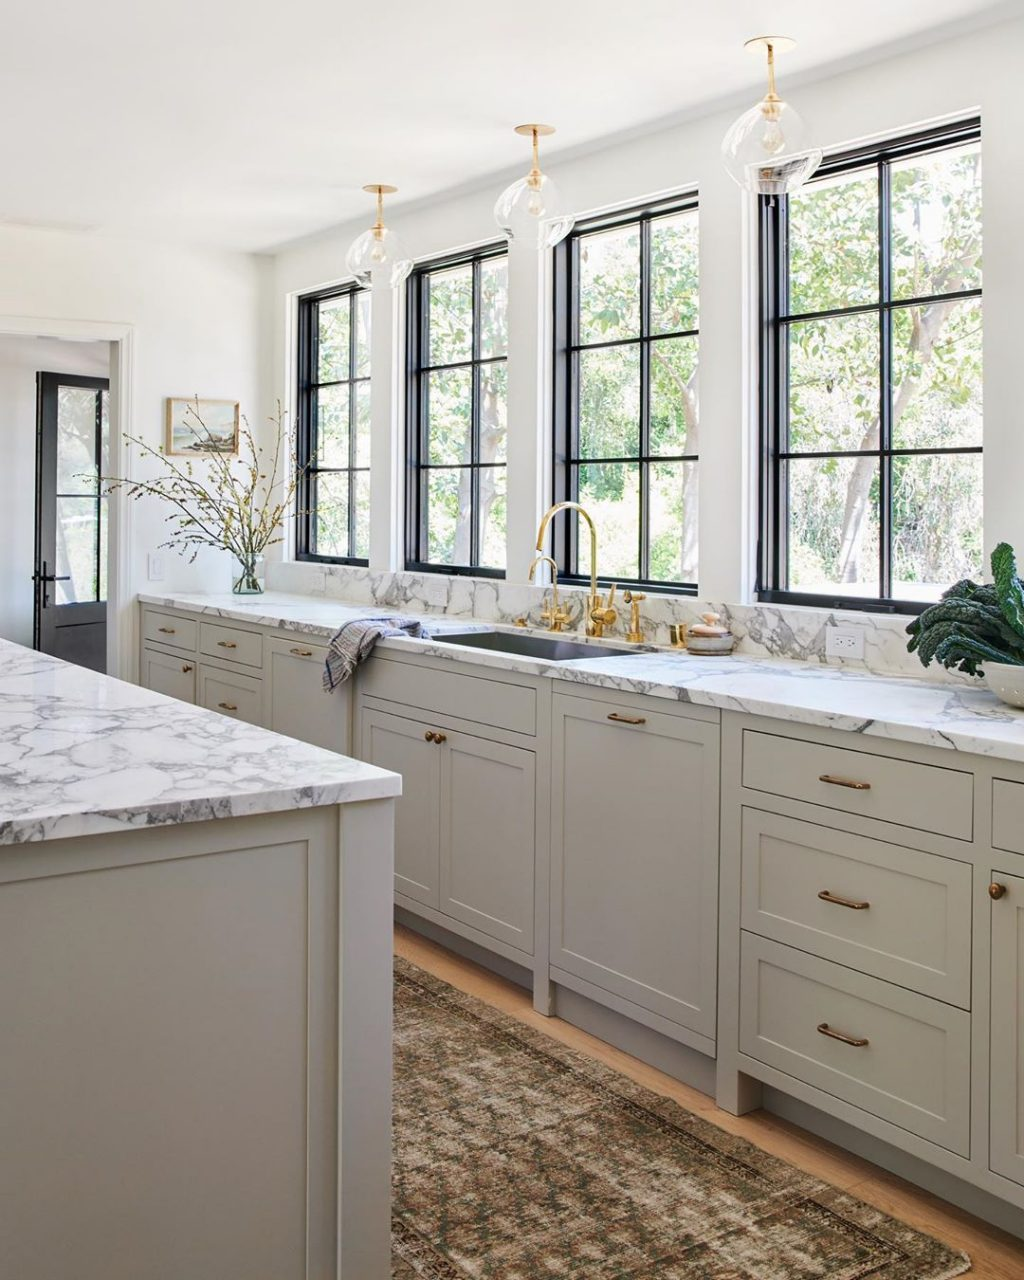 Home Hardware Kitchen Cabinets: Colors We're Considering For Our Phase 1 Kitchen Cabinets